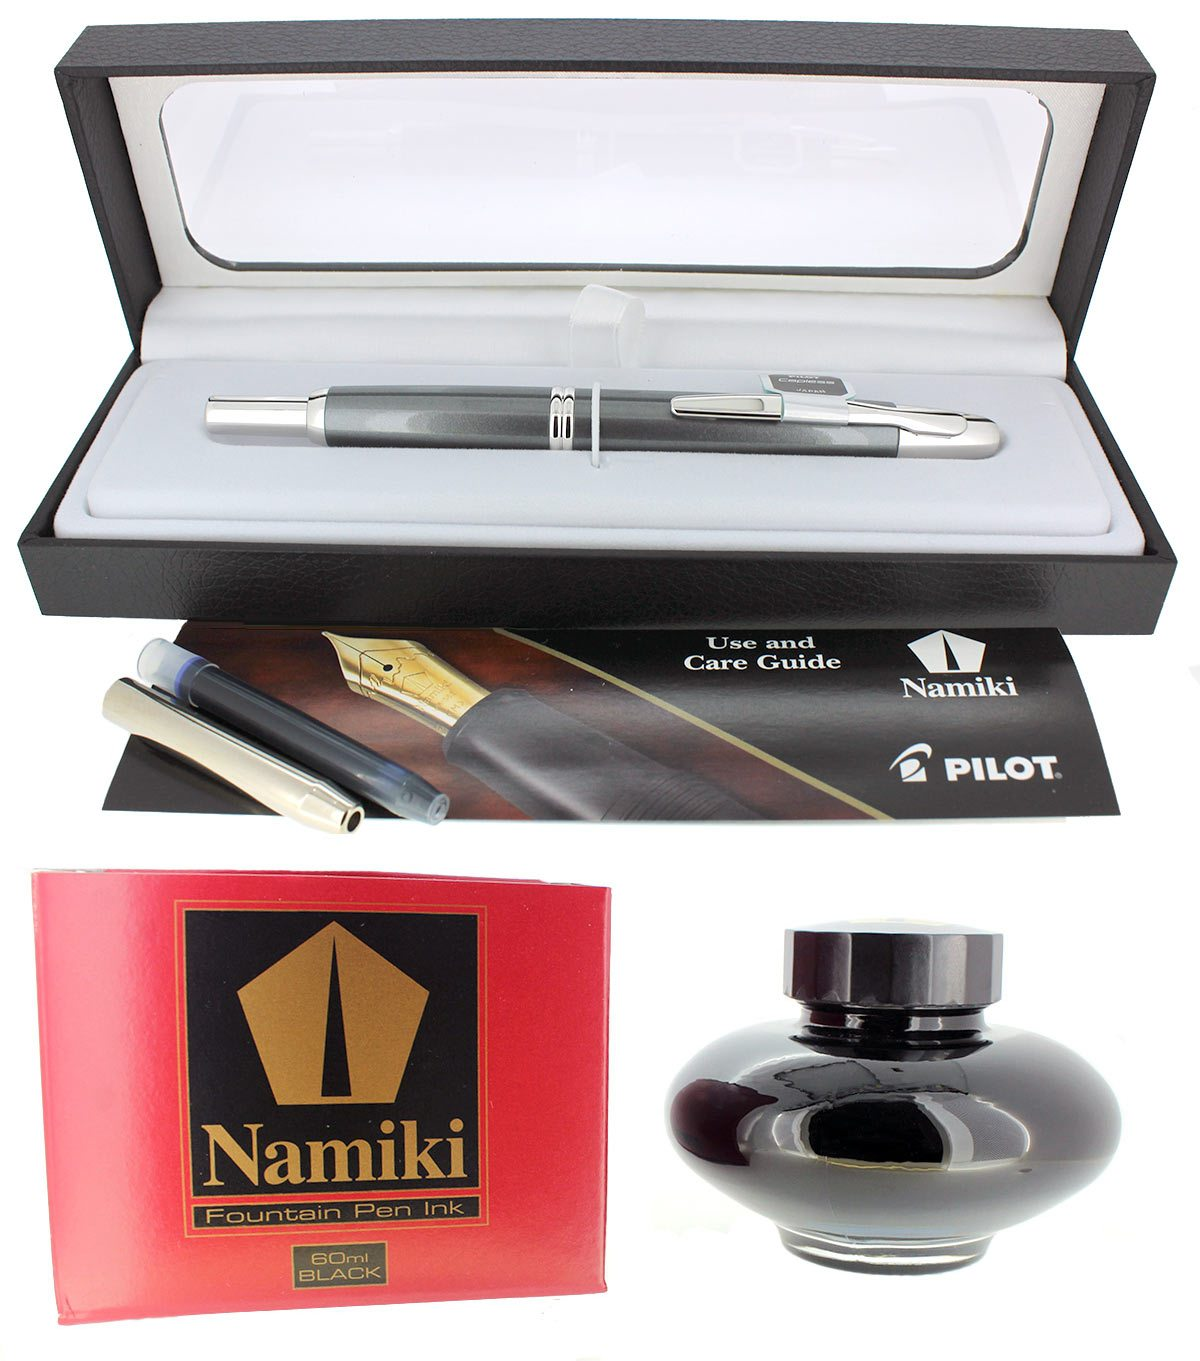 NEW PILOT NAMIKI VANISHING POINT GUN METAL GRAY RHODIUM TRIM 18K NIB FOUNTAIN PEN OFFERED BY ANTIQUE DIGGER